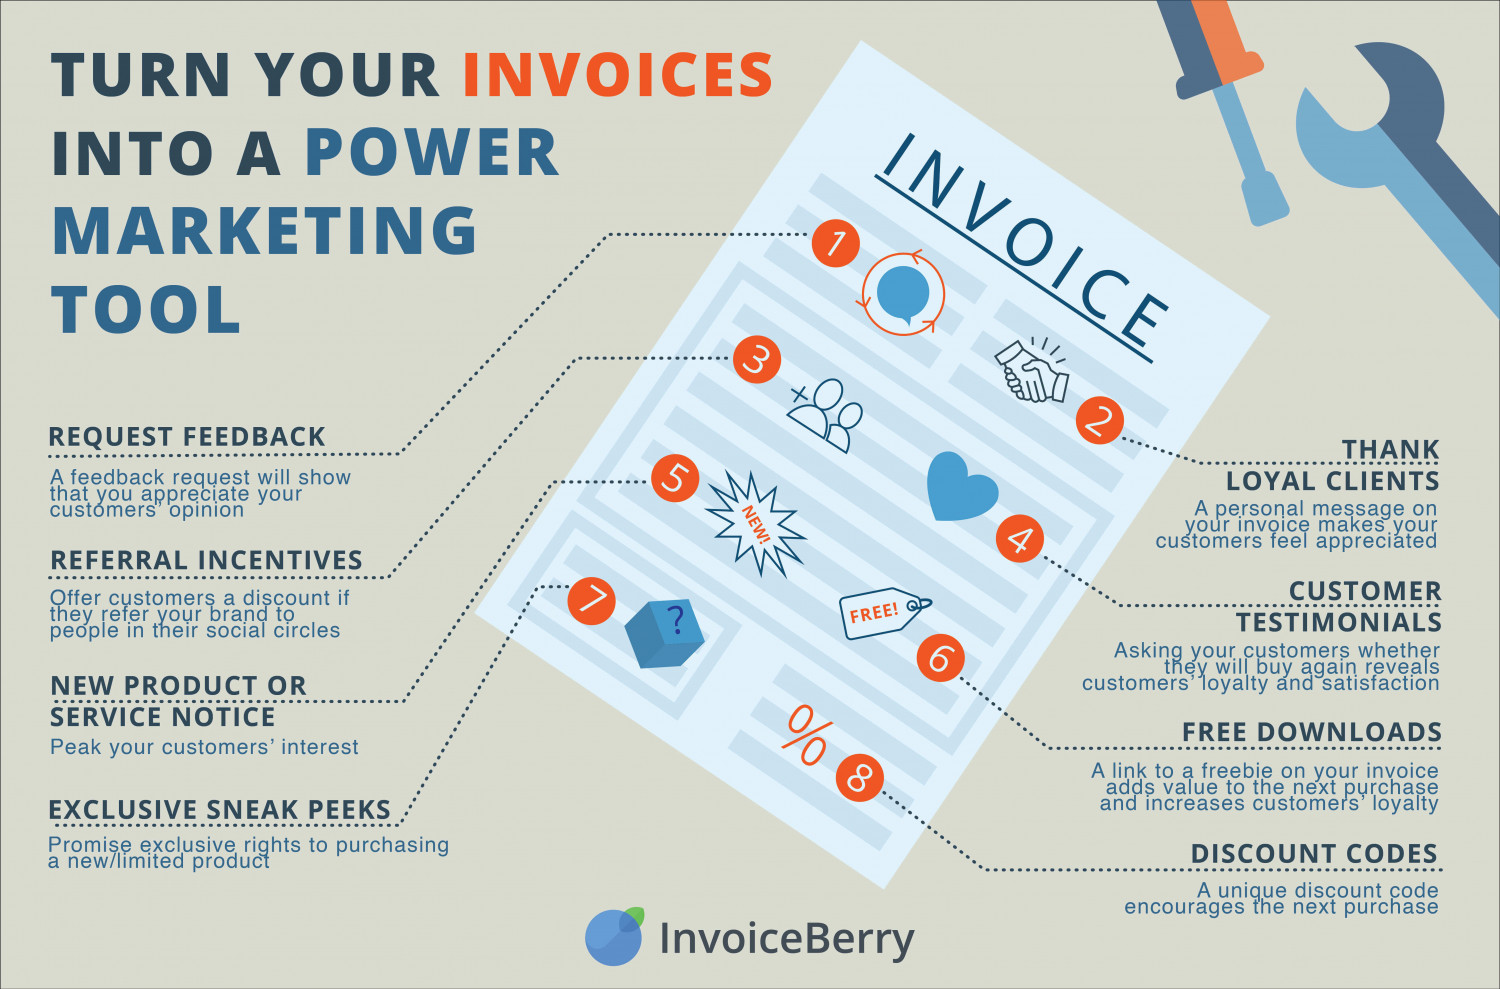 Invoice as a free marketing tool Infographic